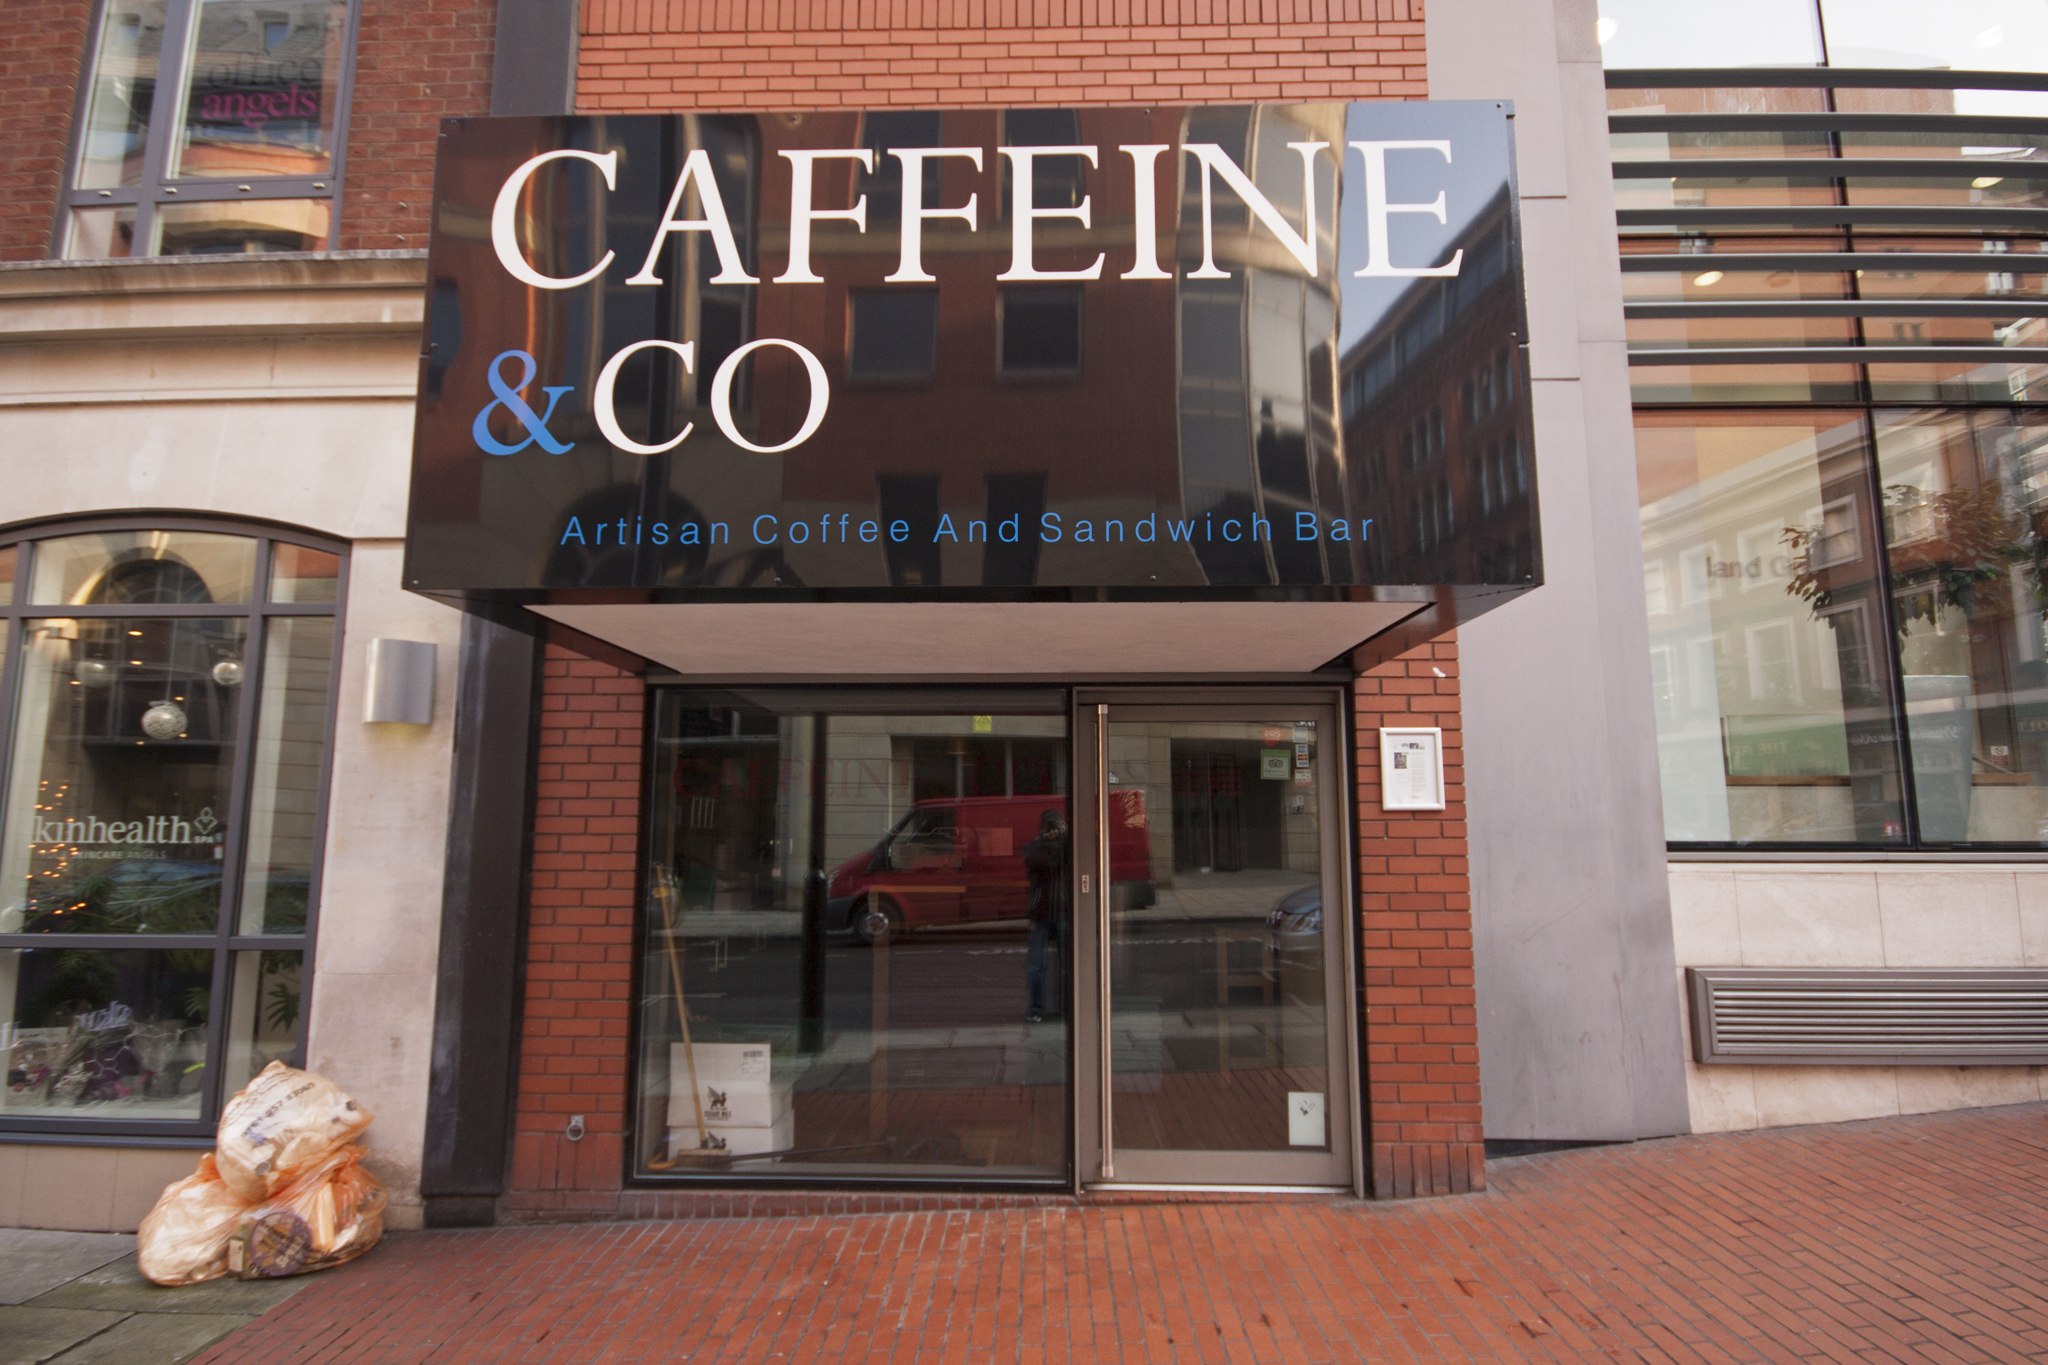 Caffeine & Co, Cafes, Manchester